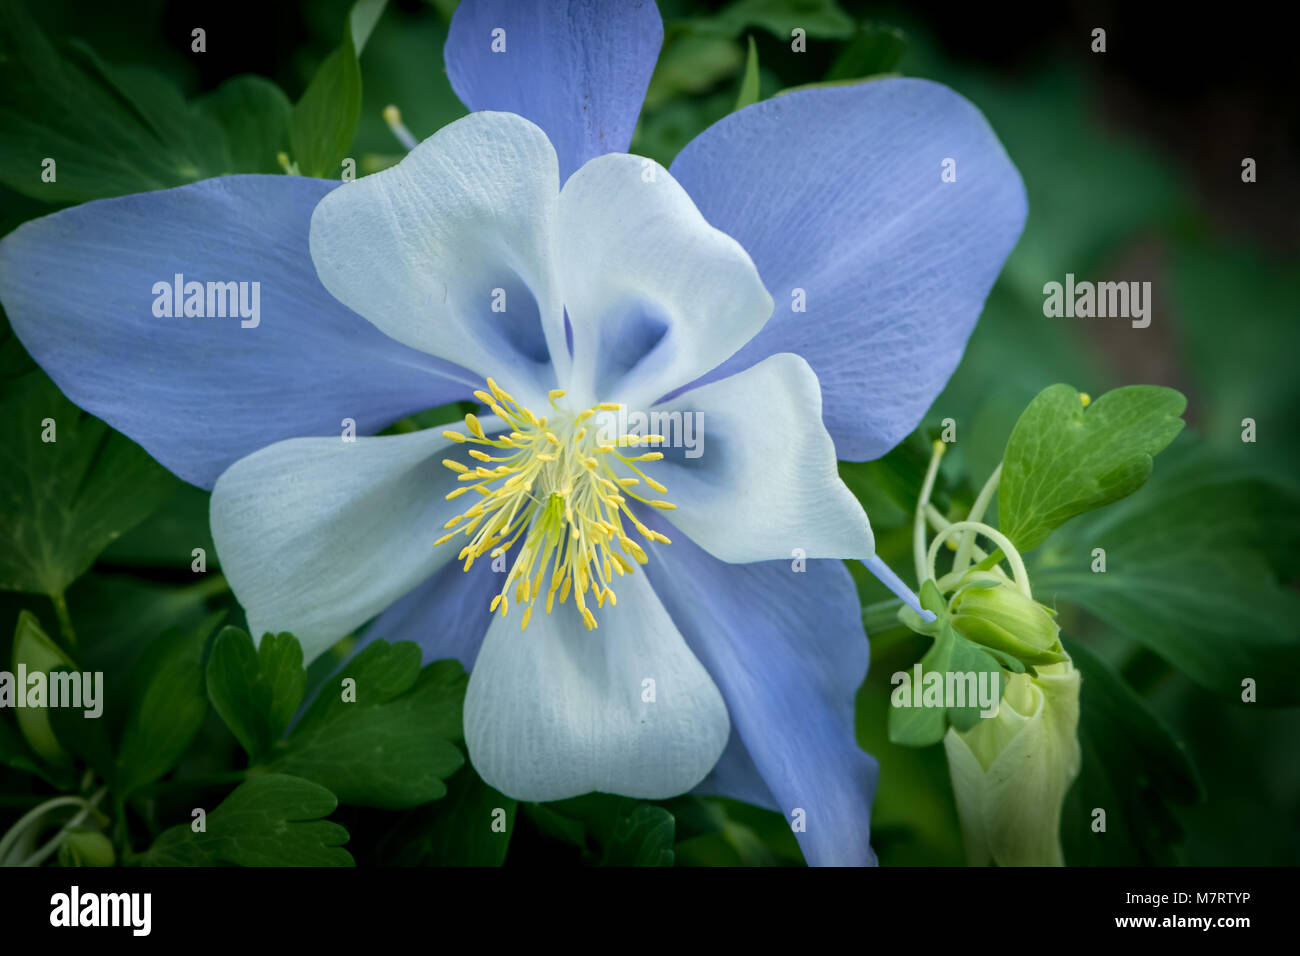 Colorado state flower stock photos colorado state flower stock colorado blue columbine aquilegia coerulea stock image izmirmasajfo